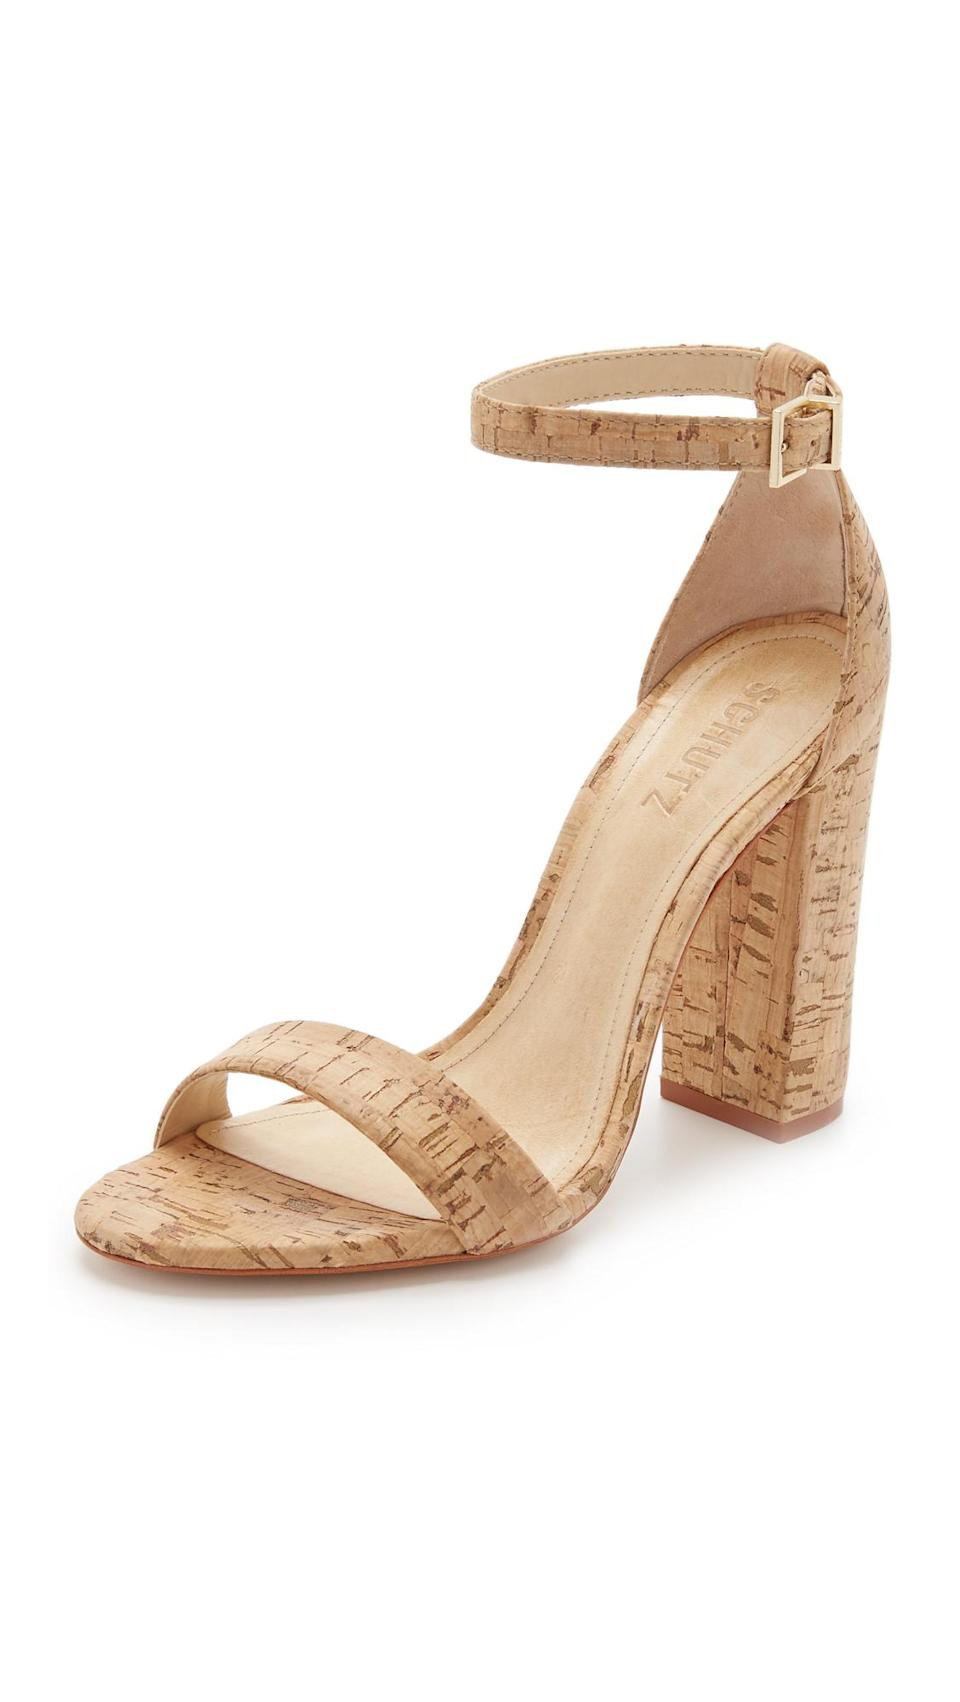 <p>And cork heels are always fun.</p>